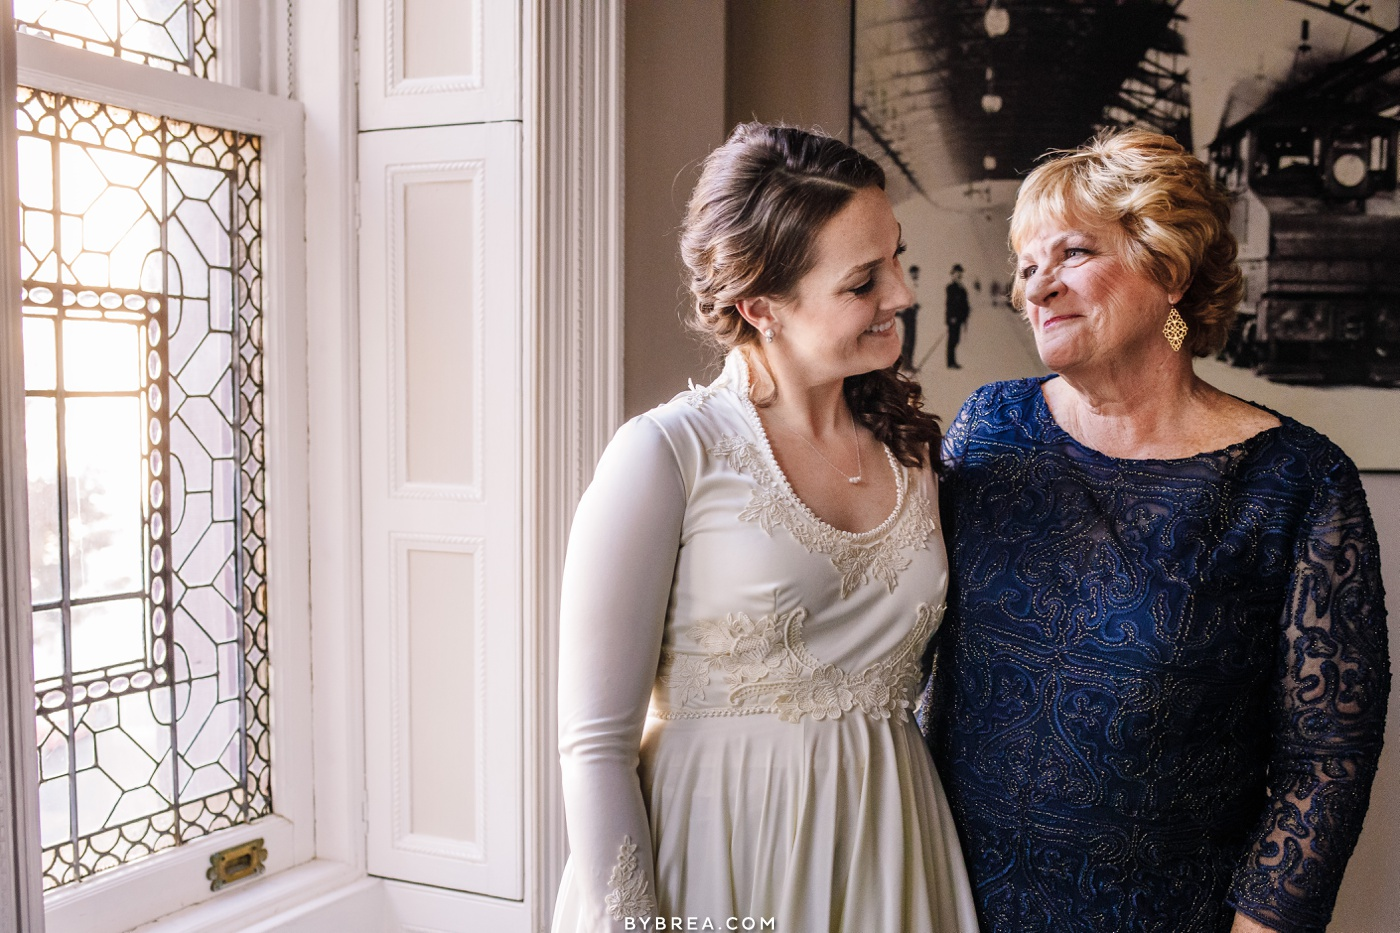 Emotional photo of bride and mother during getting ready Baltimore wedding photography